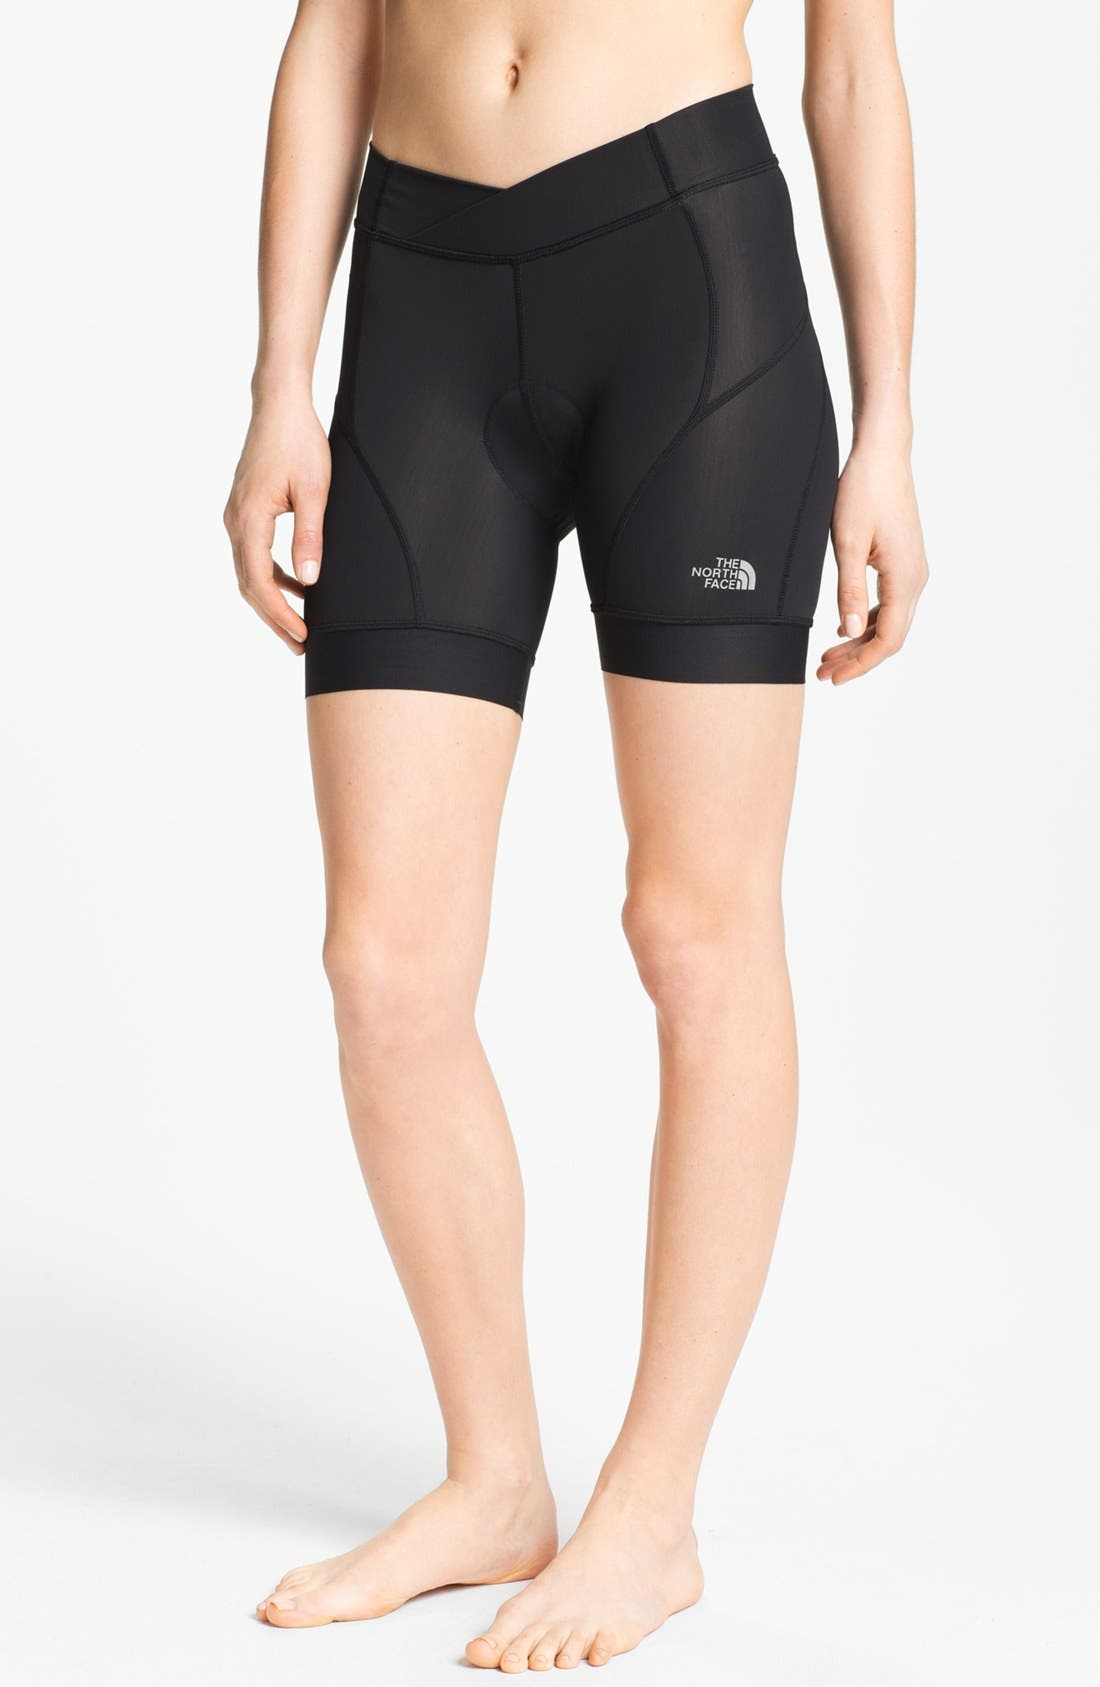 Alternate Image 1 Selected - The North Face 'Slickrock' Padded Chamois Bike Shorts